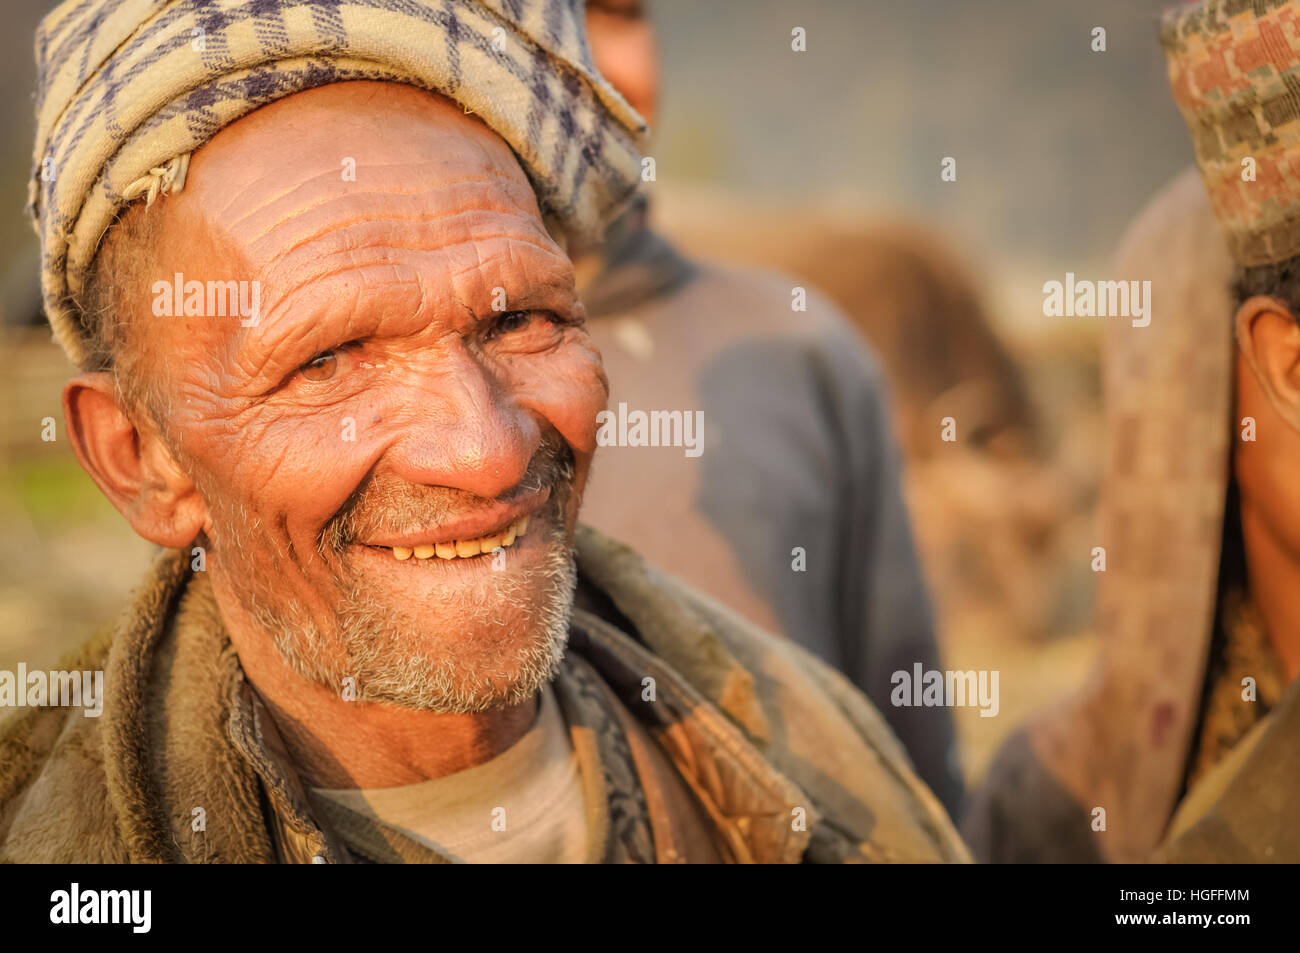 Dolpo, Nepal - circa May 2012: Old native man with little beard wears brown headcloth and jacket and bites his lip - Stock Image